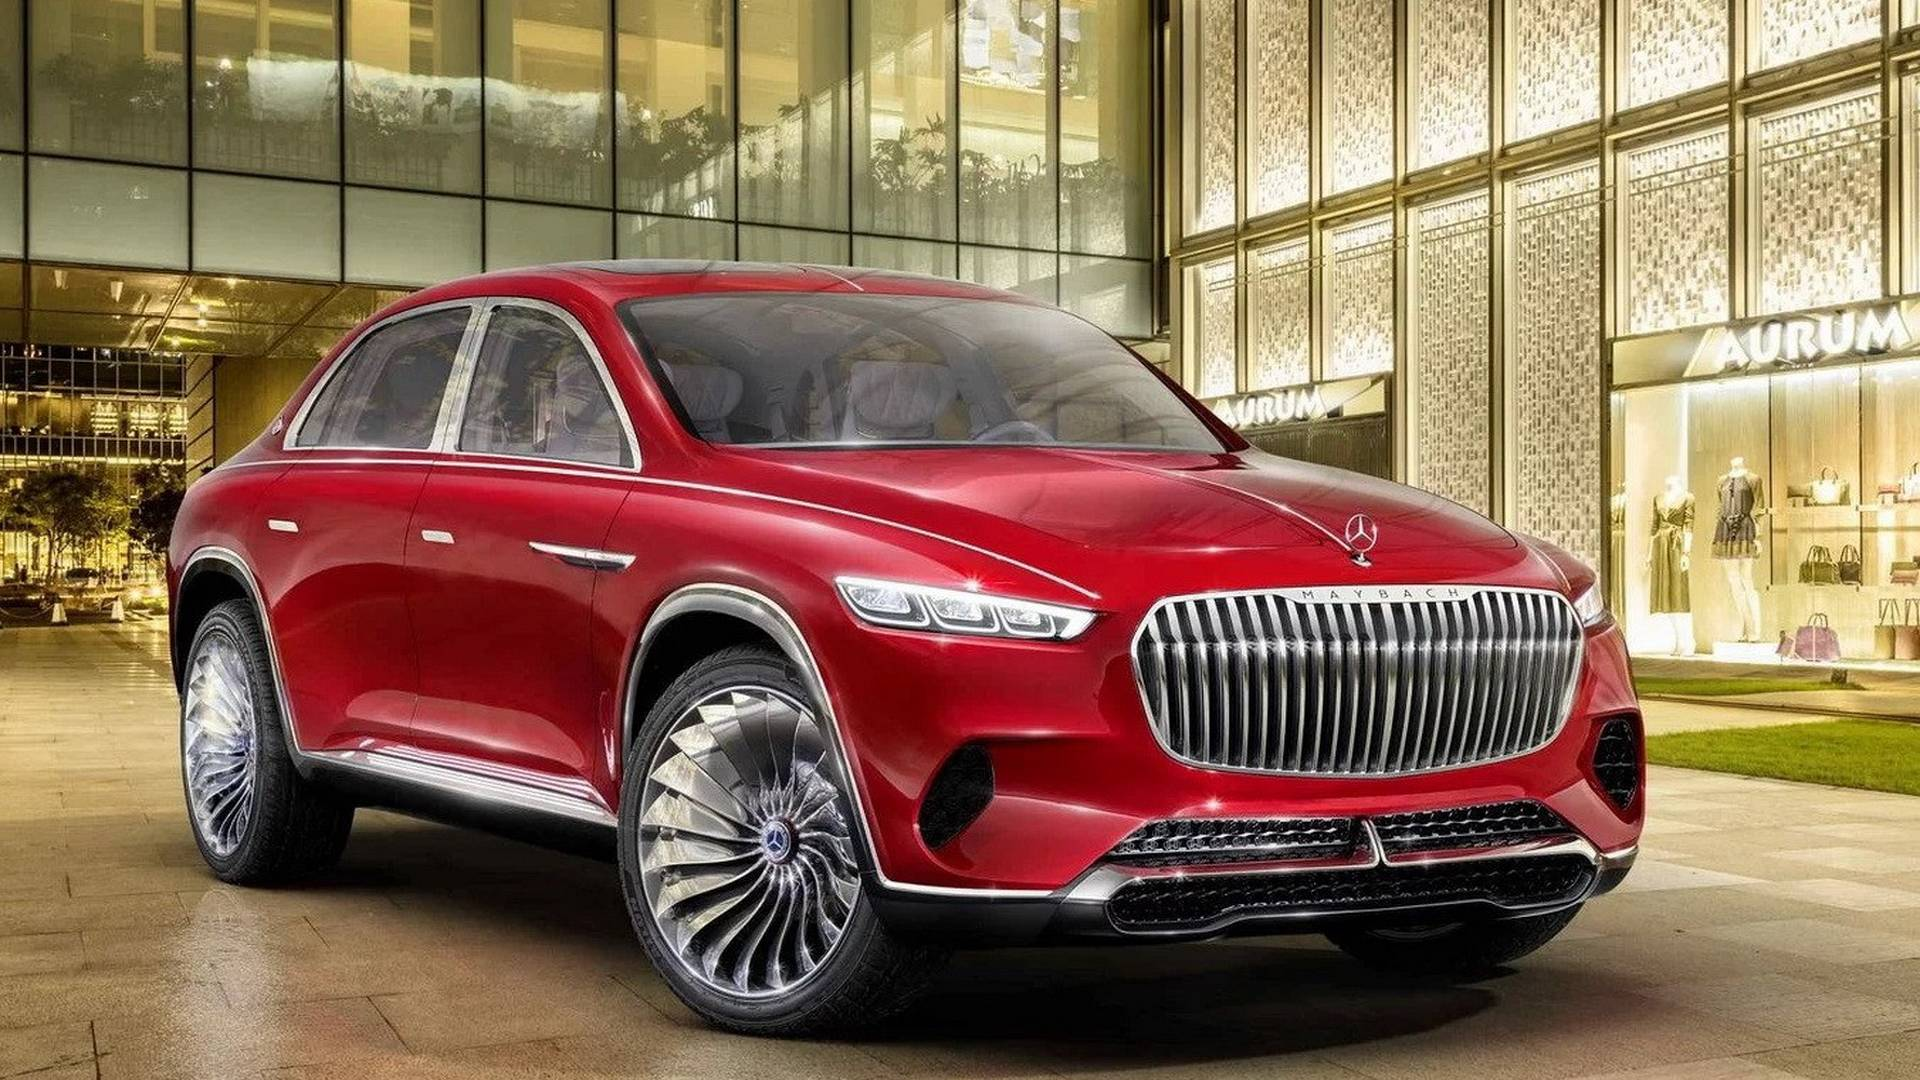 vision-mercedes-maybach-ultimate-luxury-leaked-official-image (4)